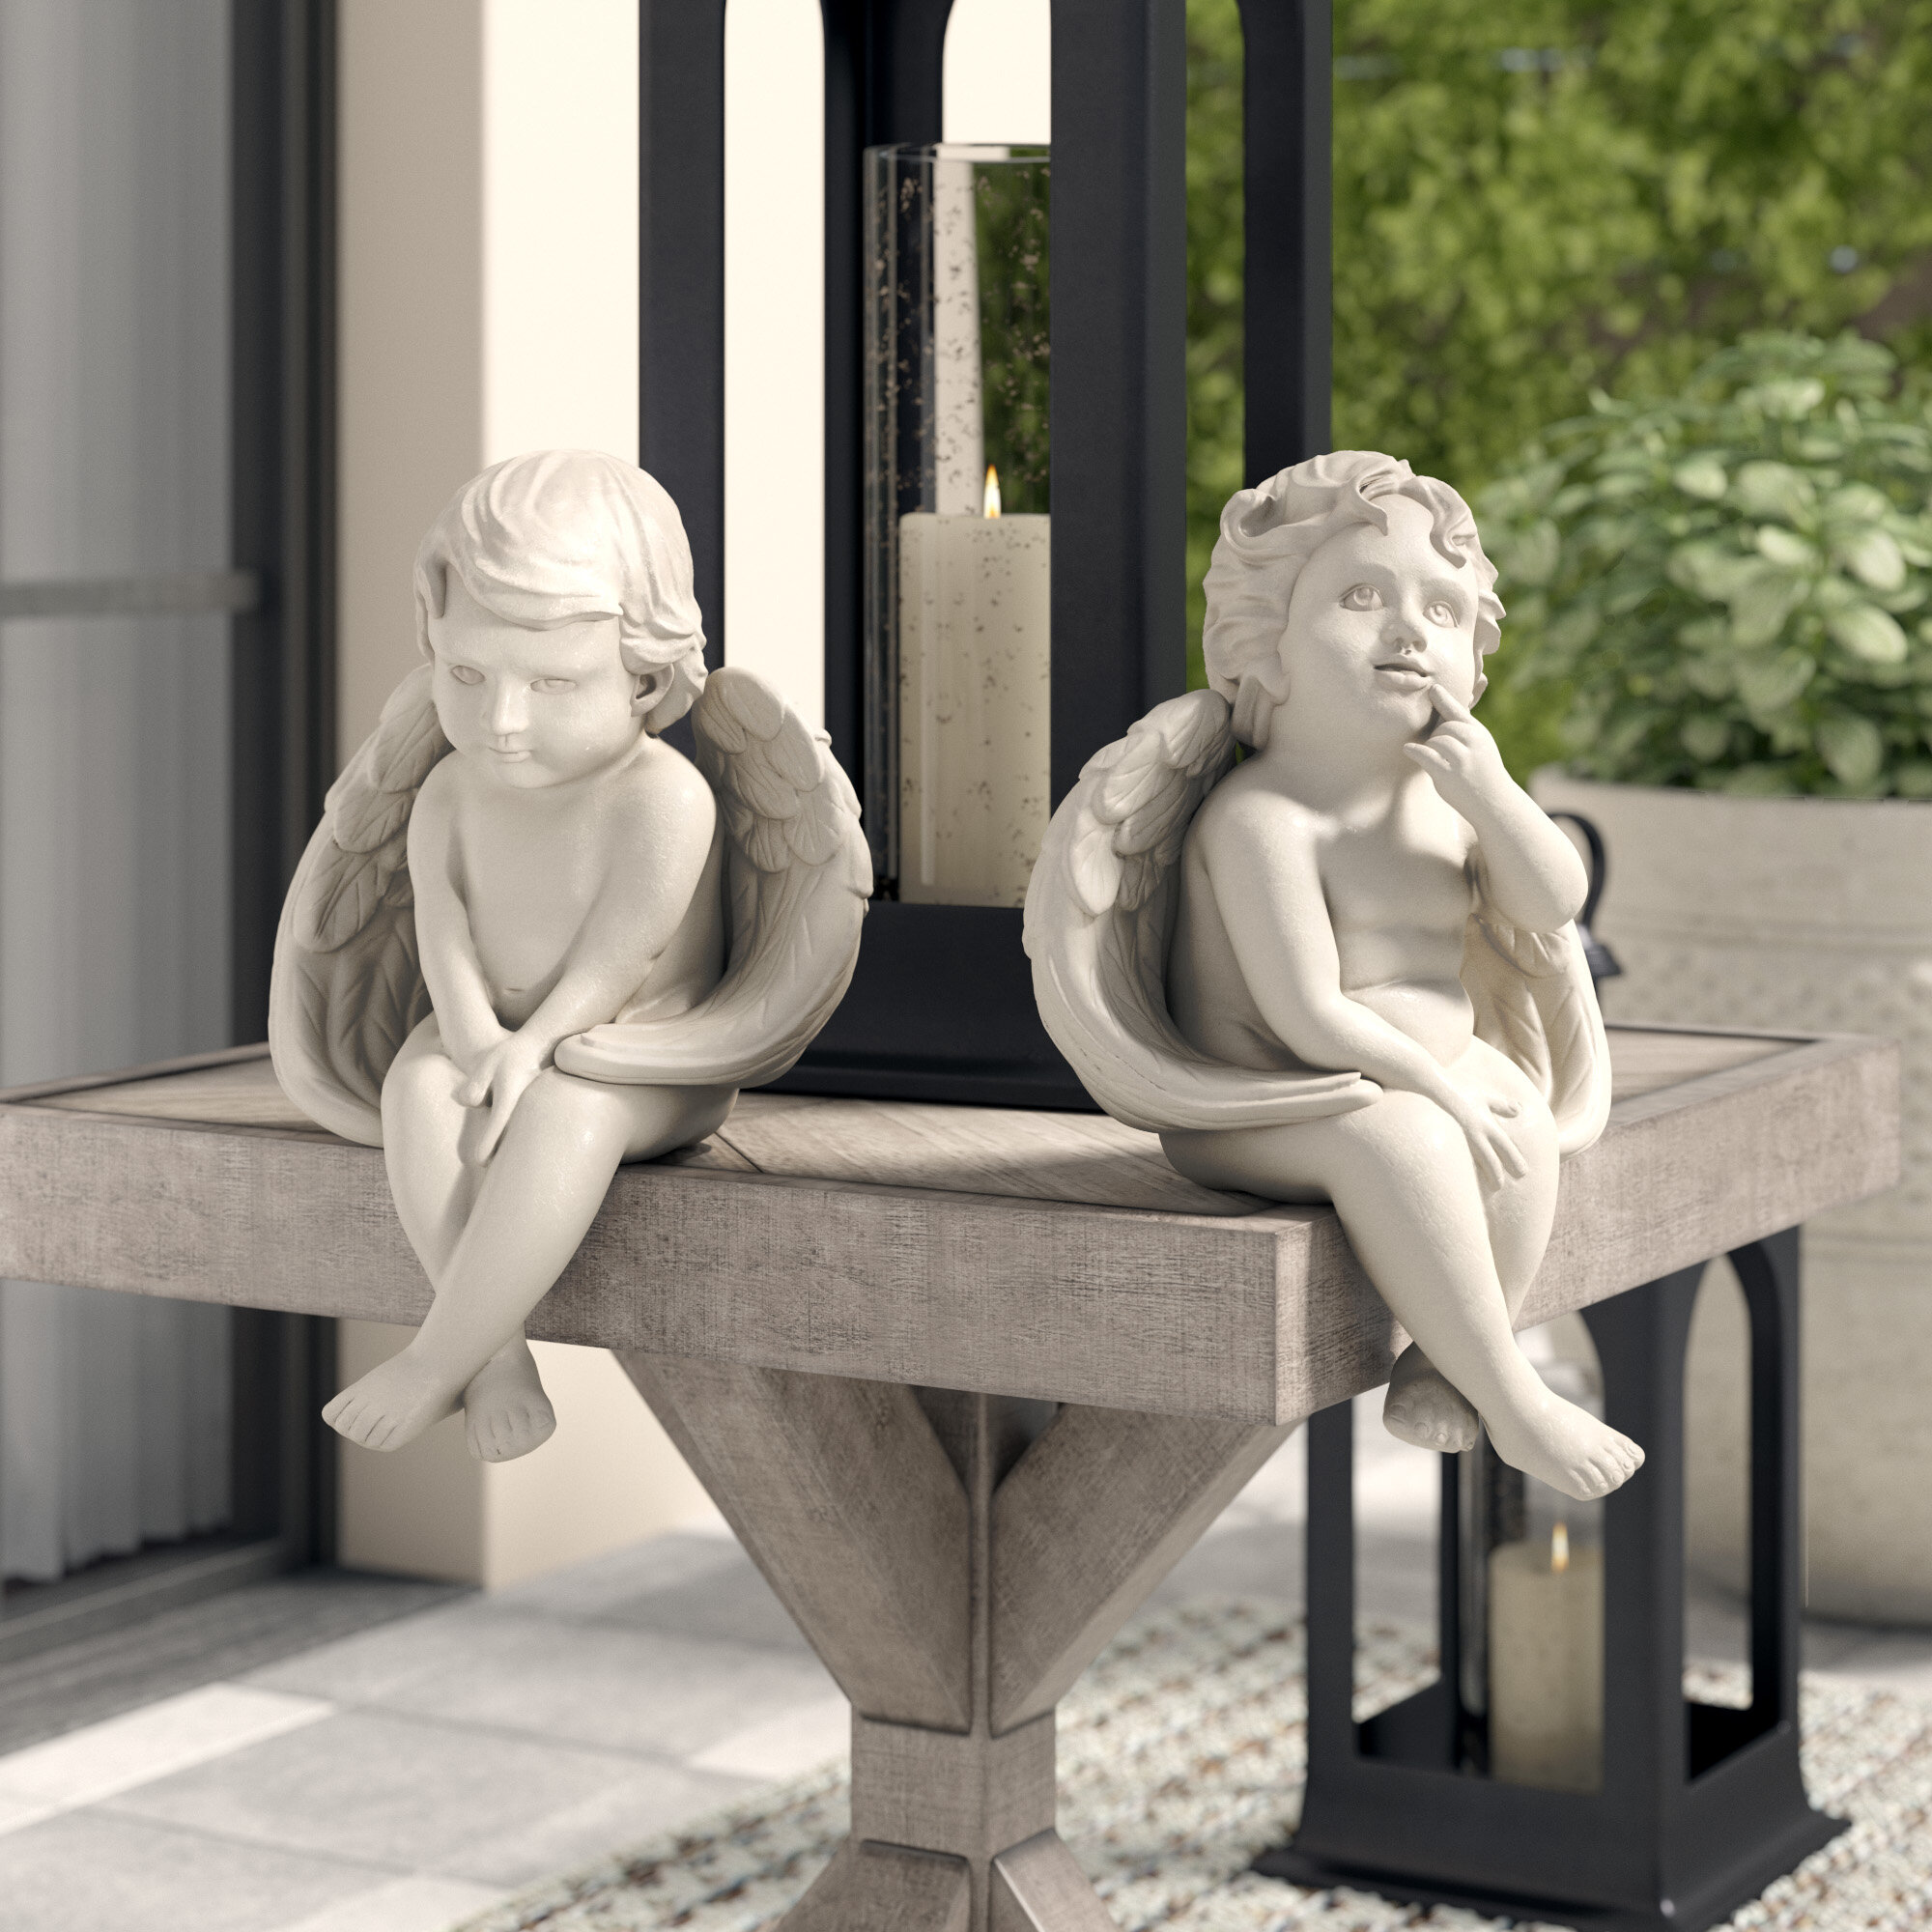 Greyleigh Abilene Angels Of Meditation And Contemplation 2 Piece Statue Set Reviews Wayfair